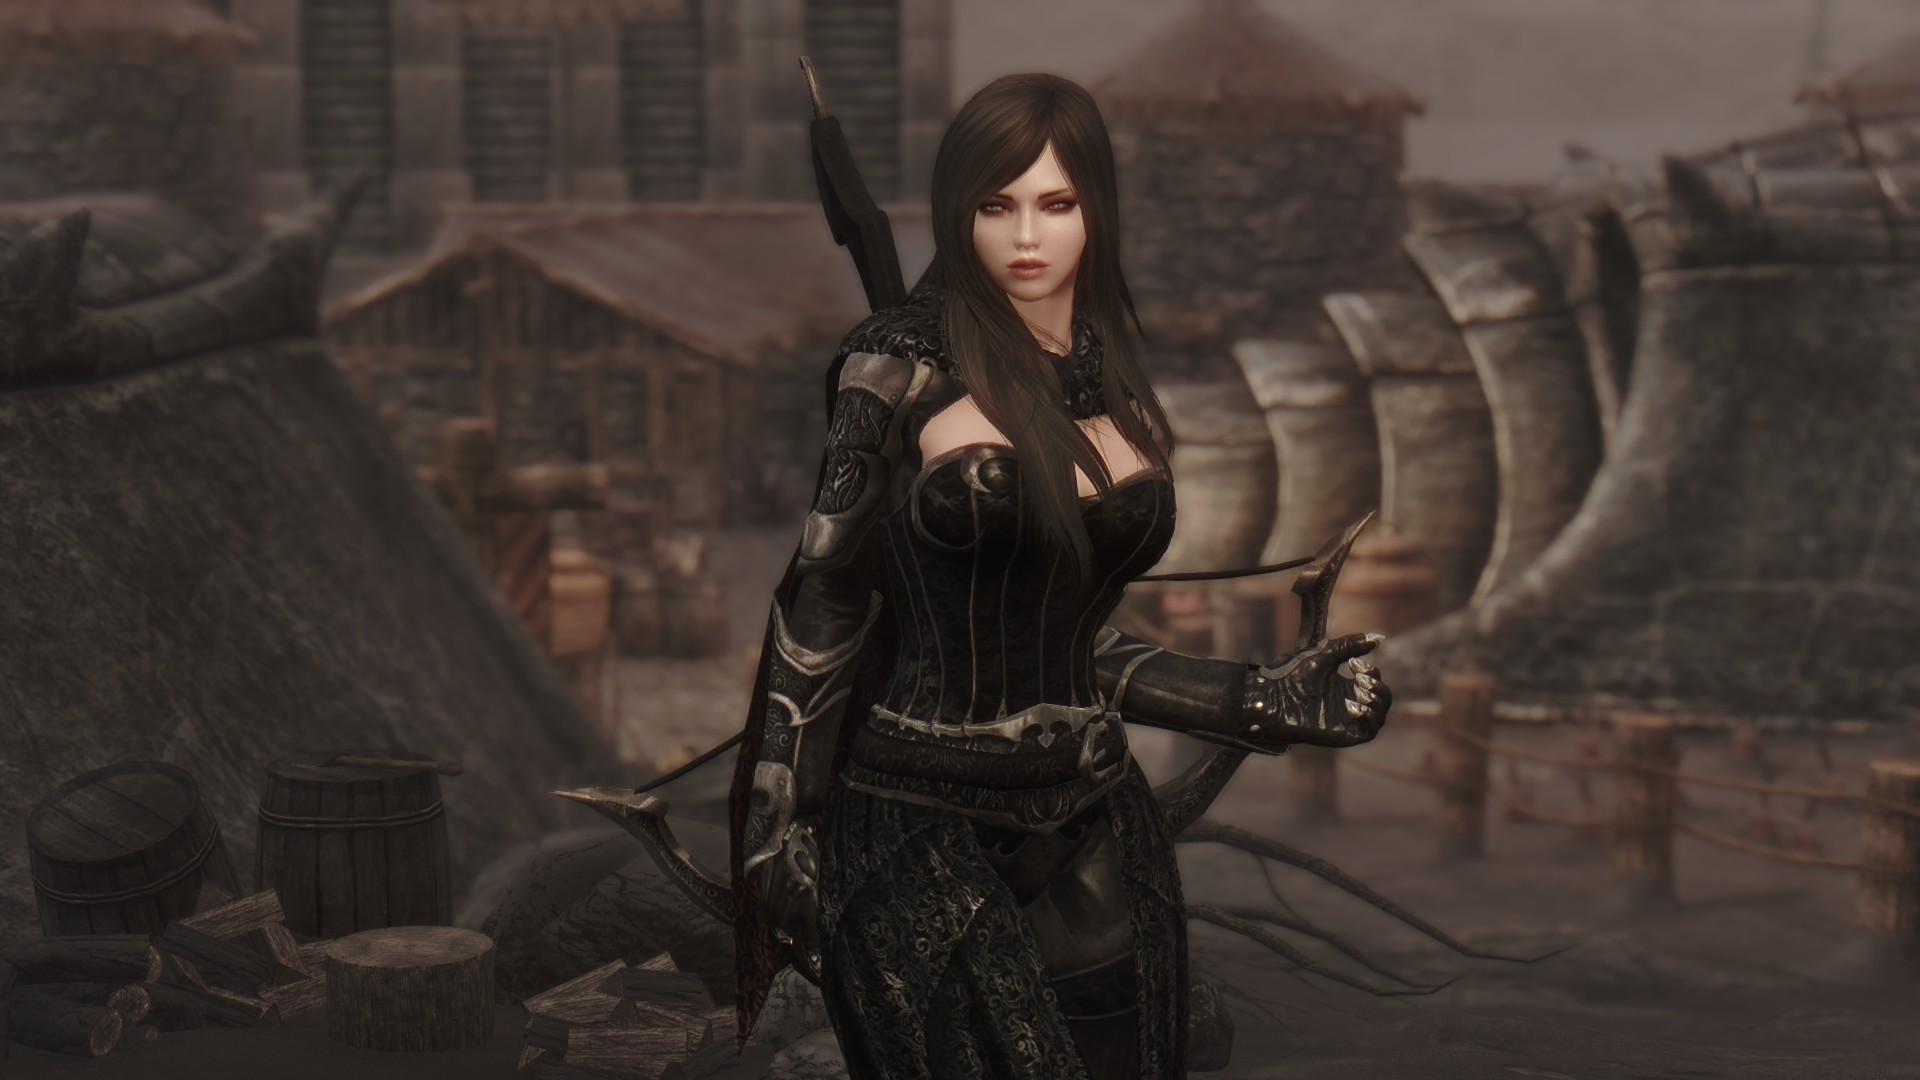 Skyrim female character mods xxx gallery